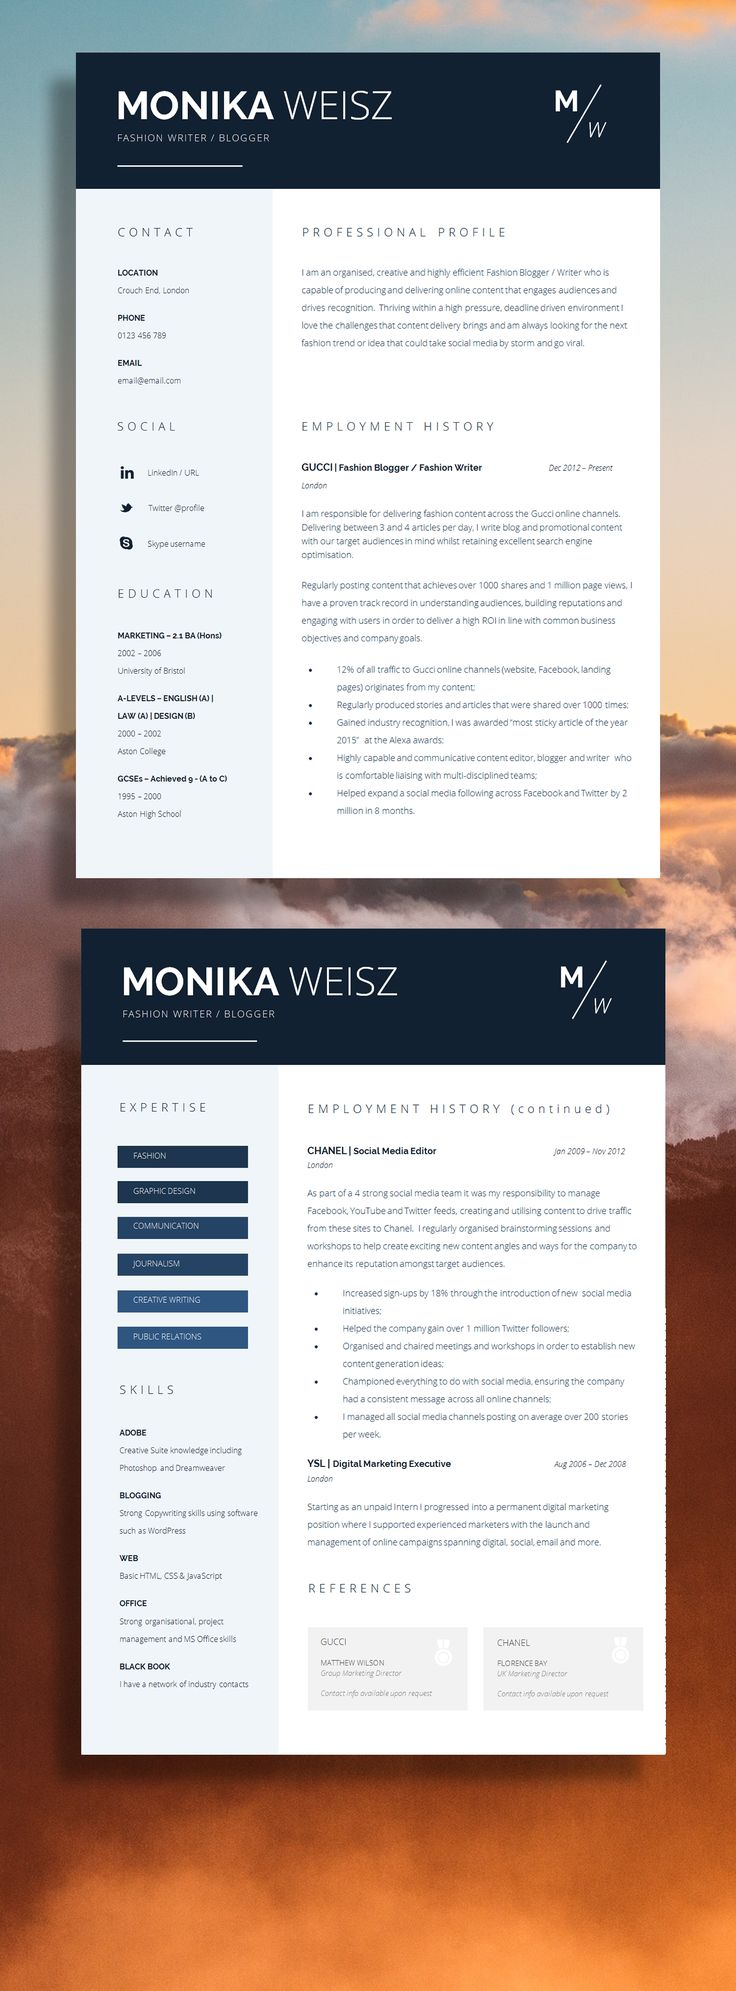 472 best images about creative cv    resume on pinterest